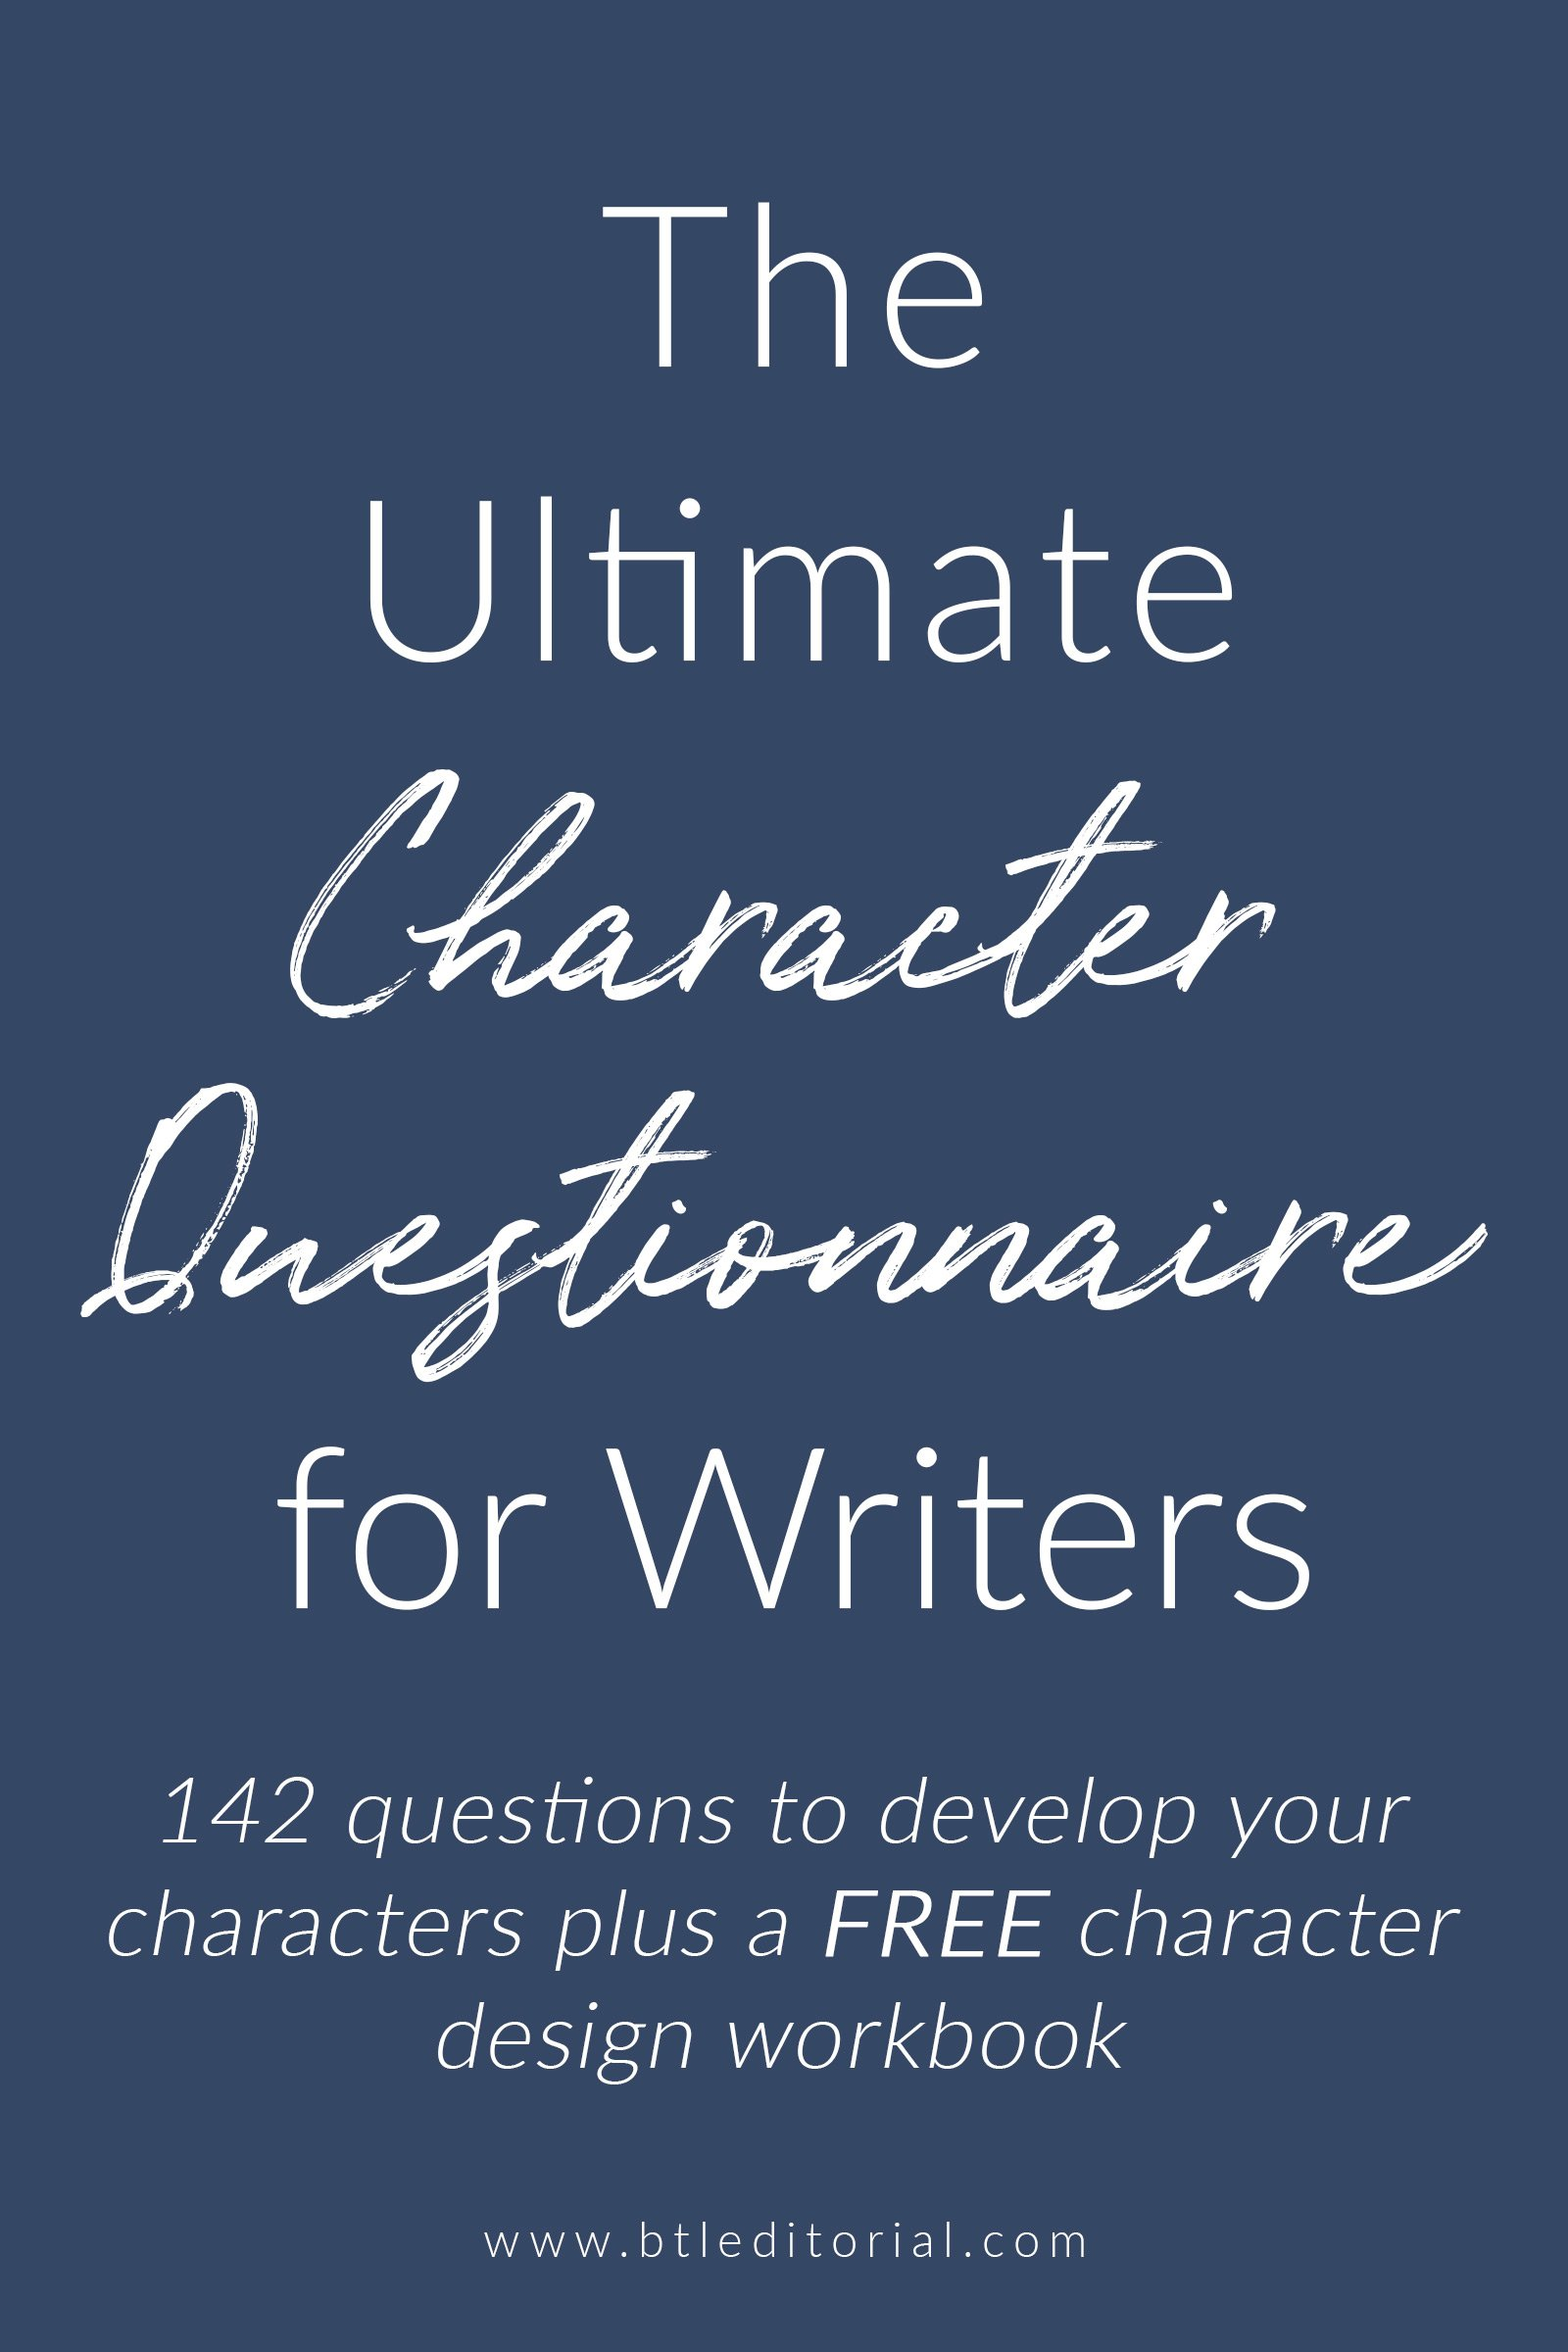 142 questions for character development for your next novel